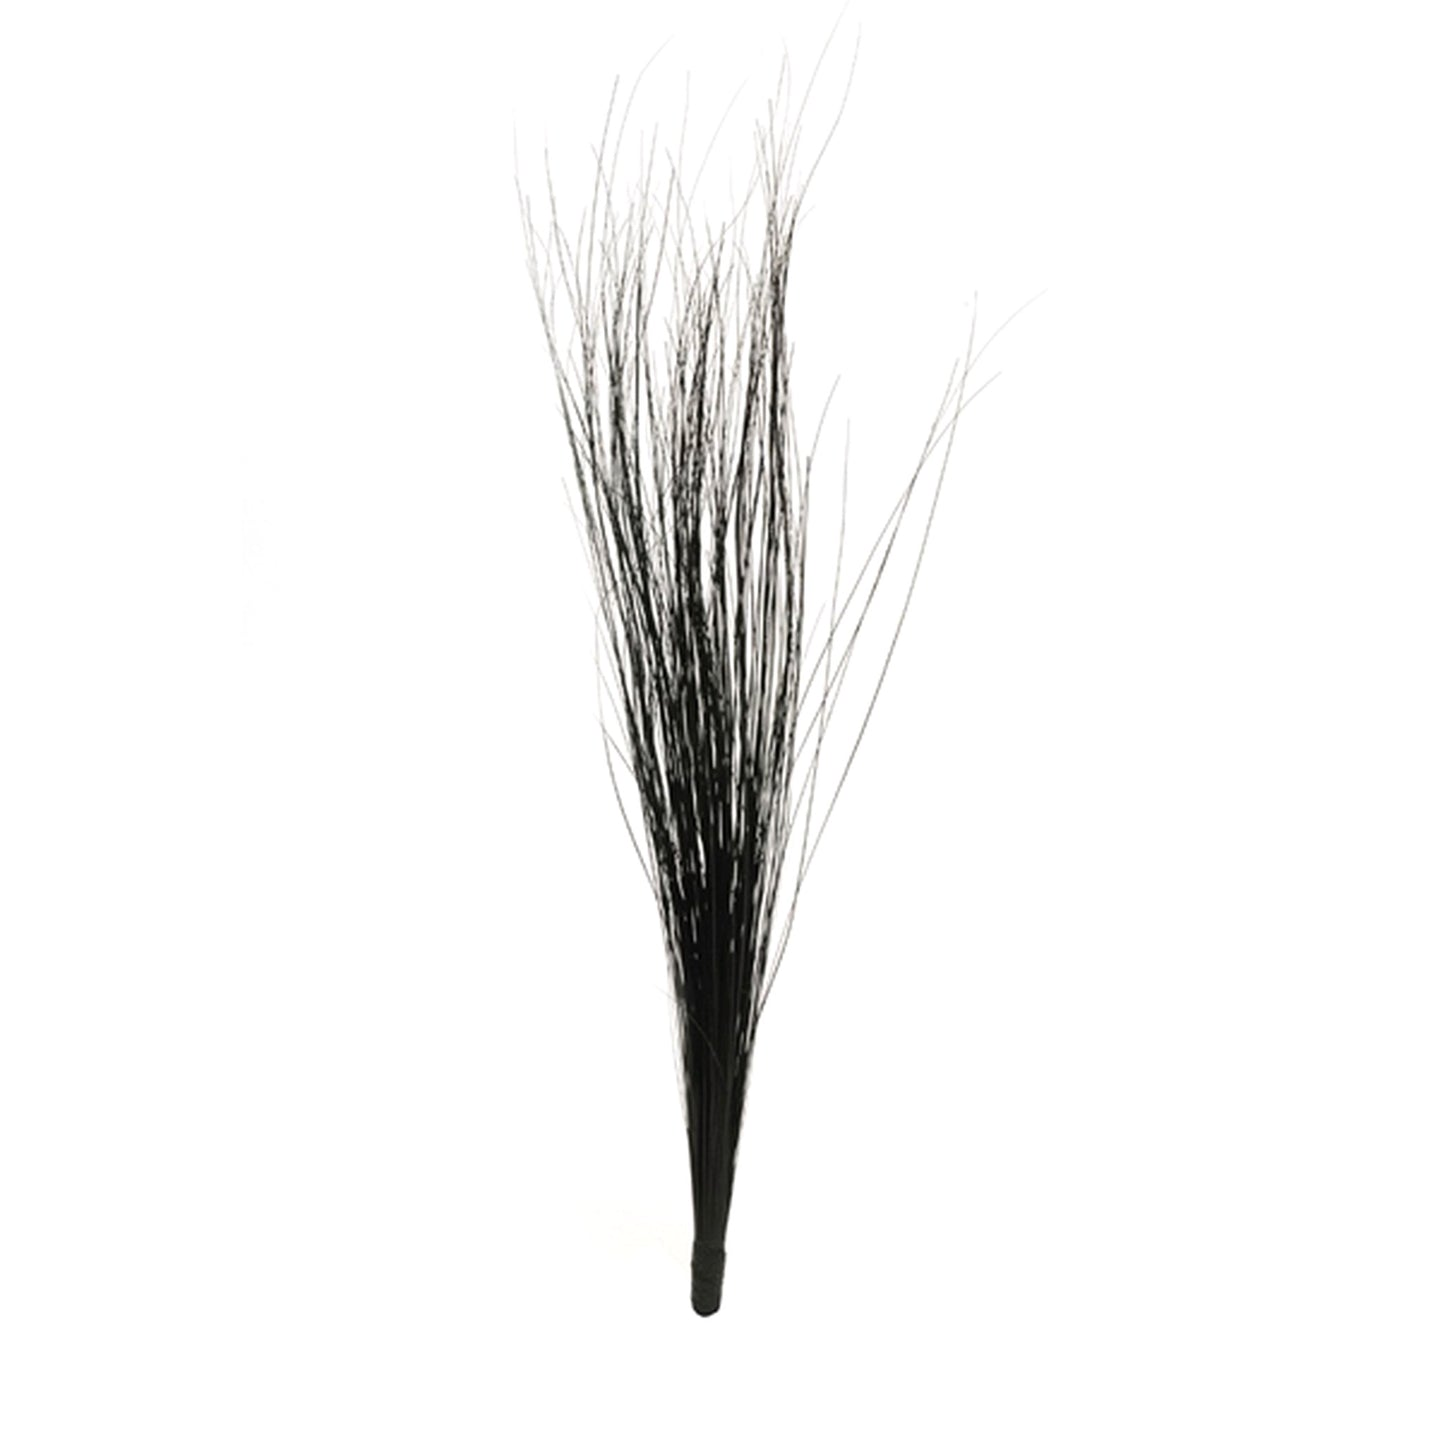 Burnt peacock feather brush mount for millinery fascinator wedding hats FM083